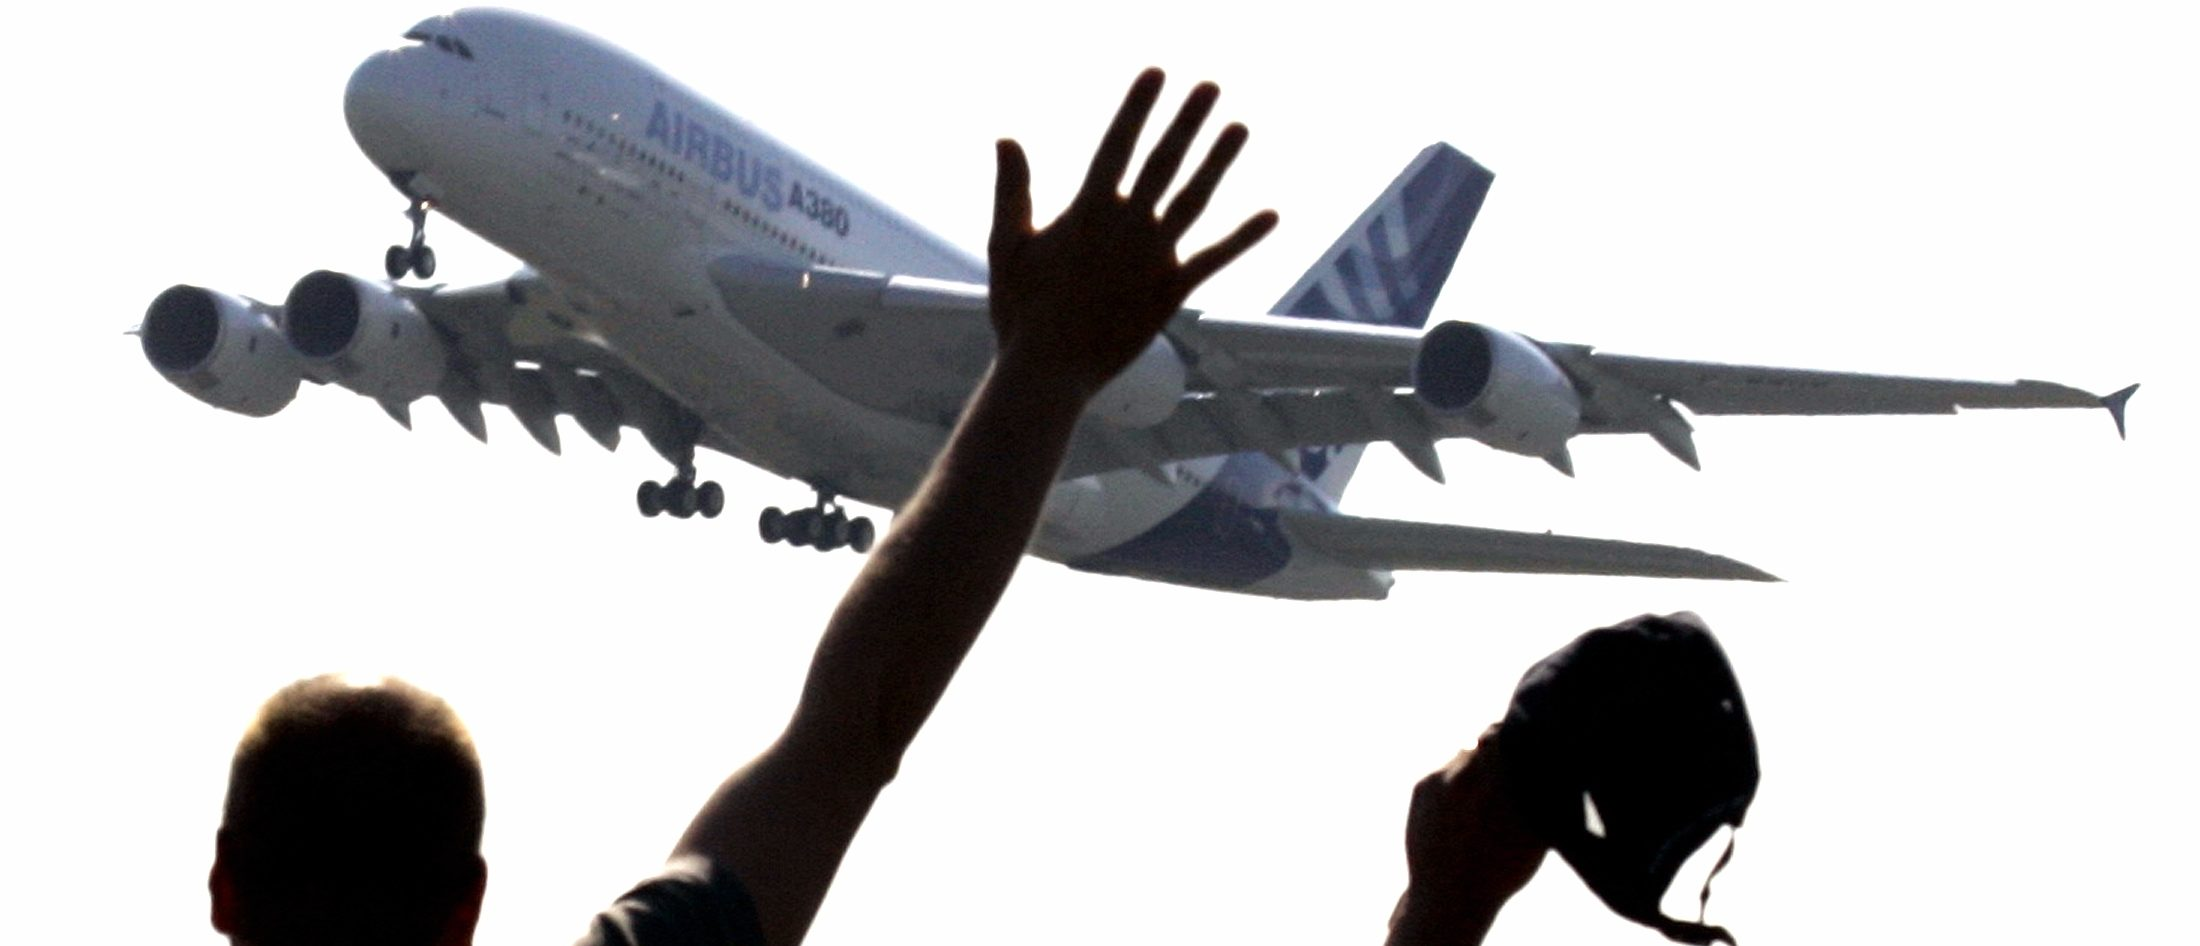 Spectators wave as they watch the world's biggest airliner, the Airbus A380, taking off on its maiden flight in southwestern France. REUTERS/Eric Gaillard